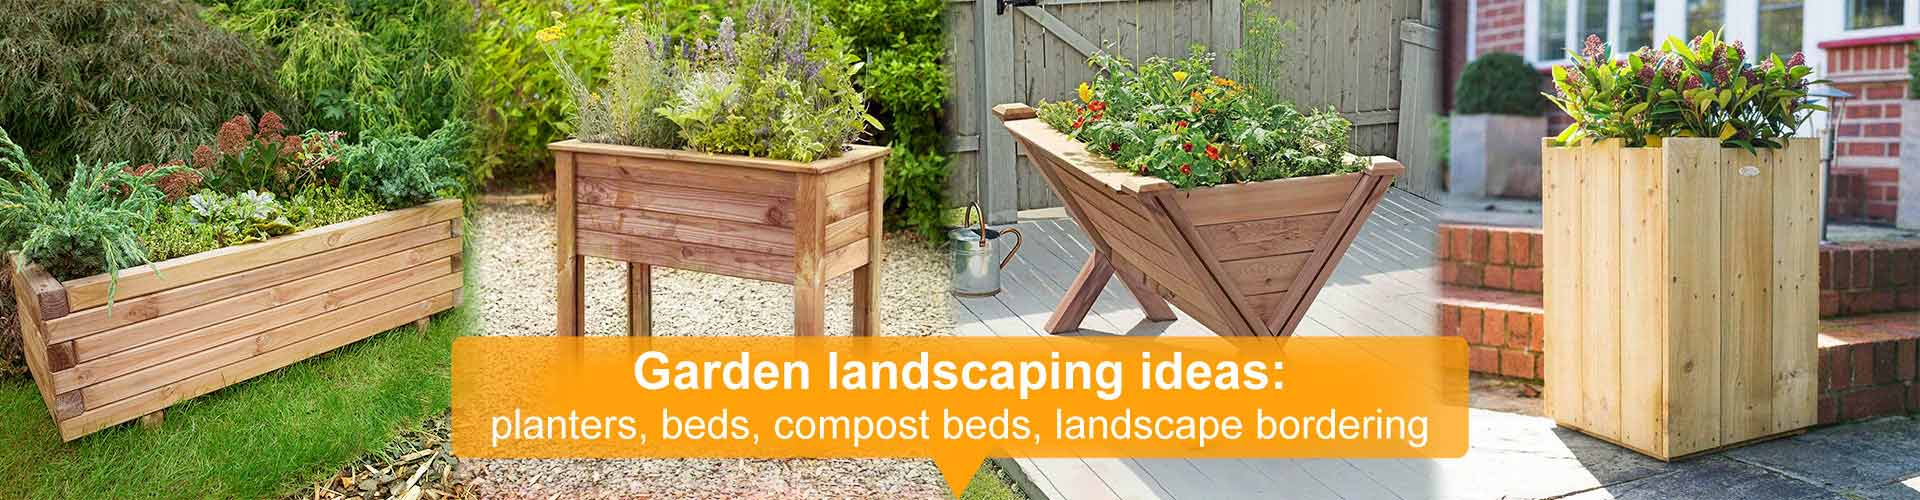 Planting & Landscaping